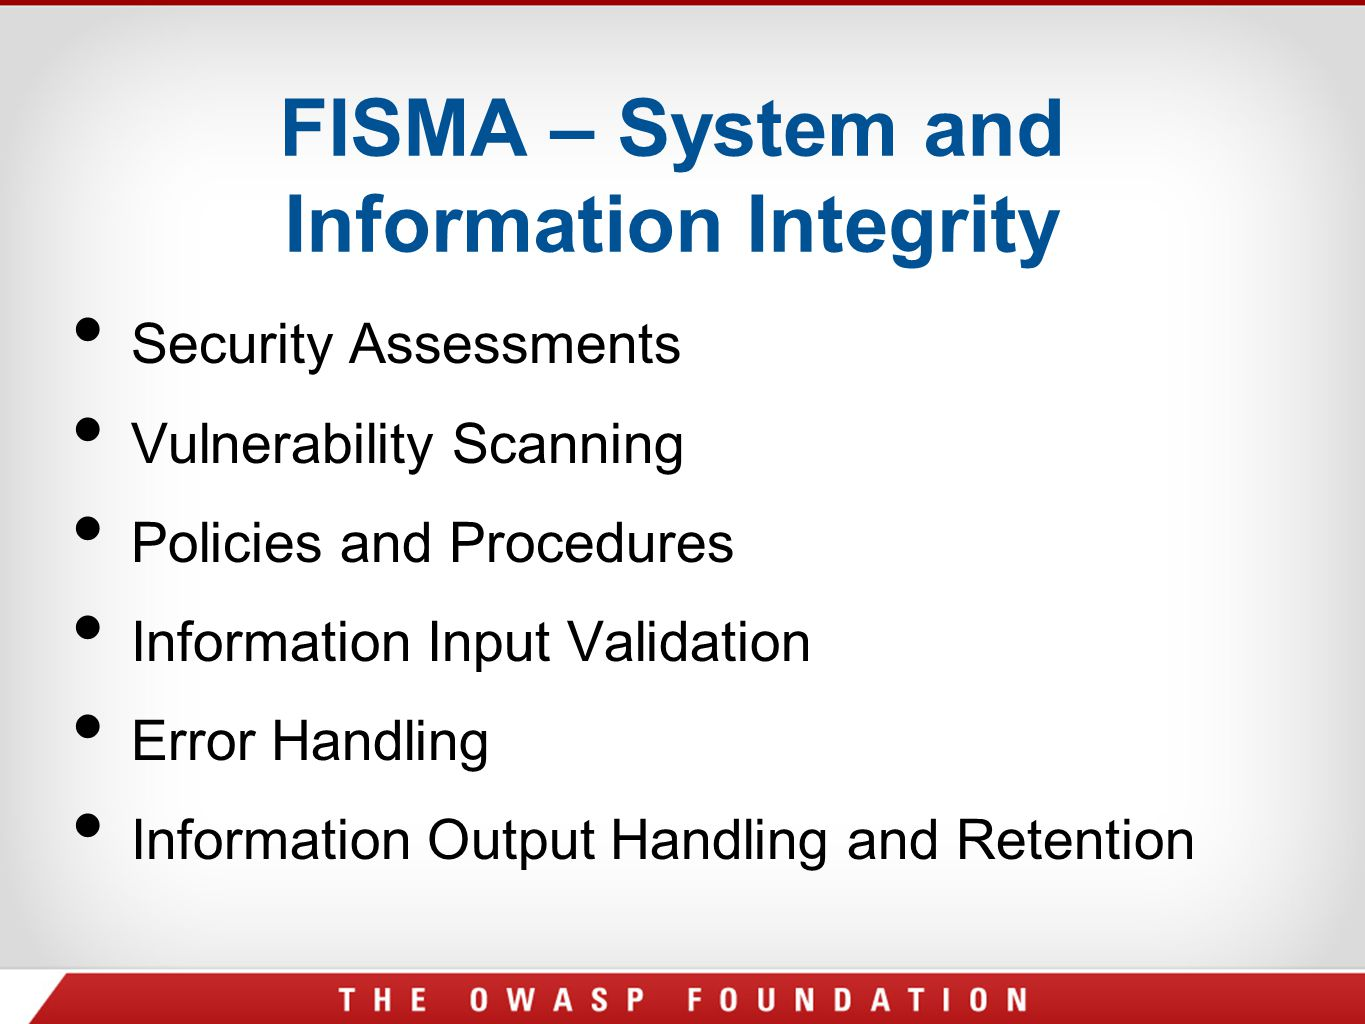 FISMA – System and Information Integrity